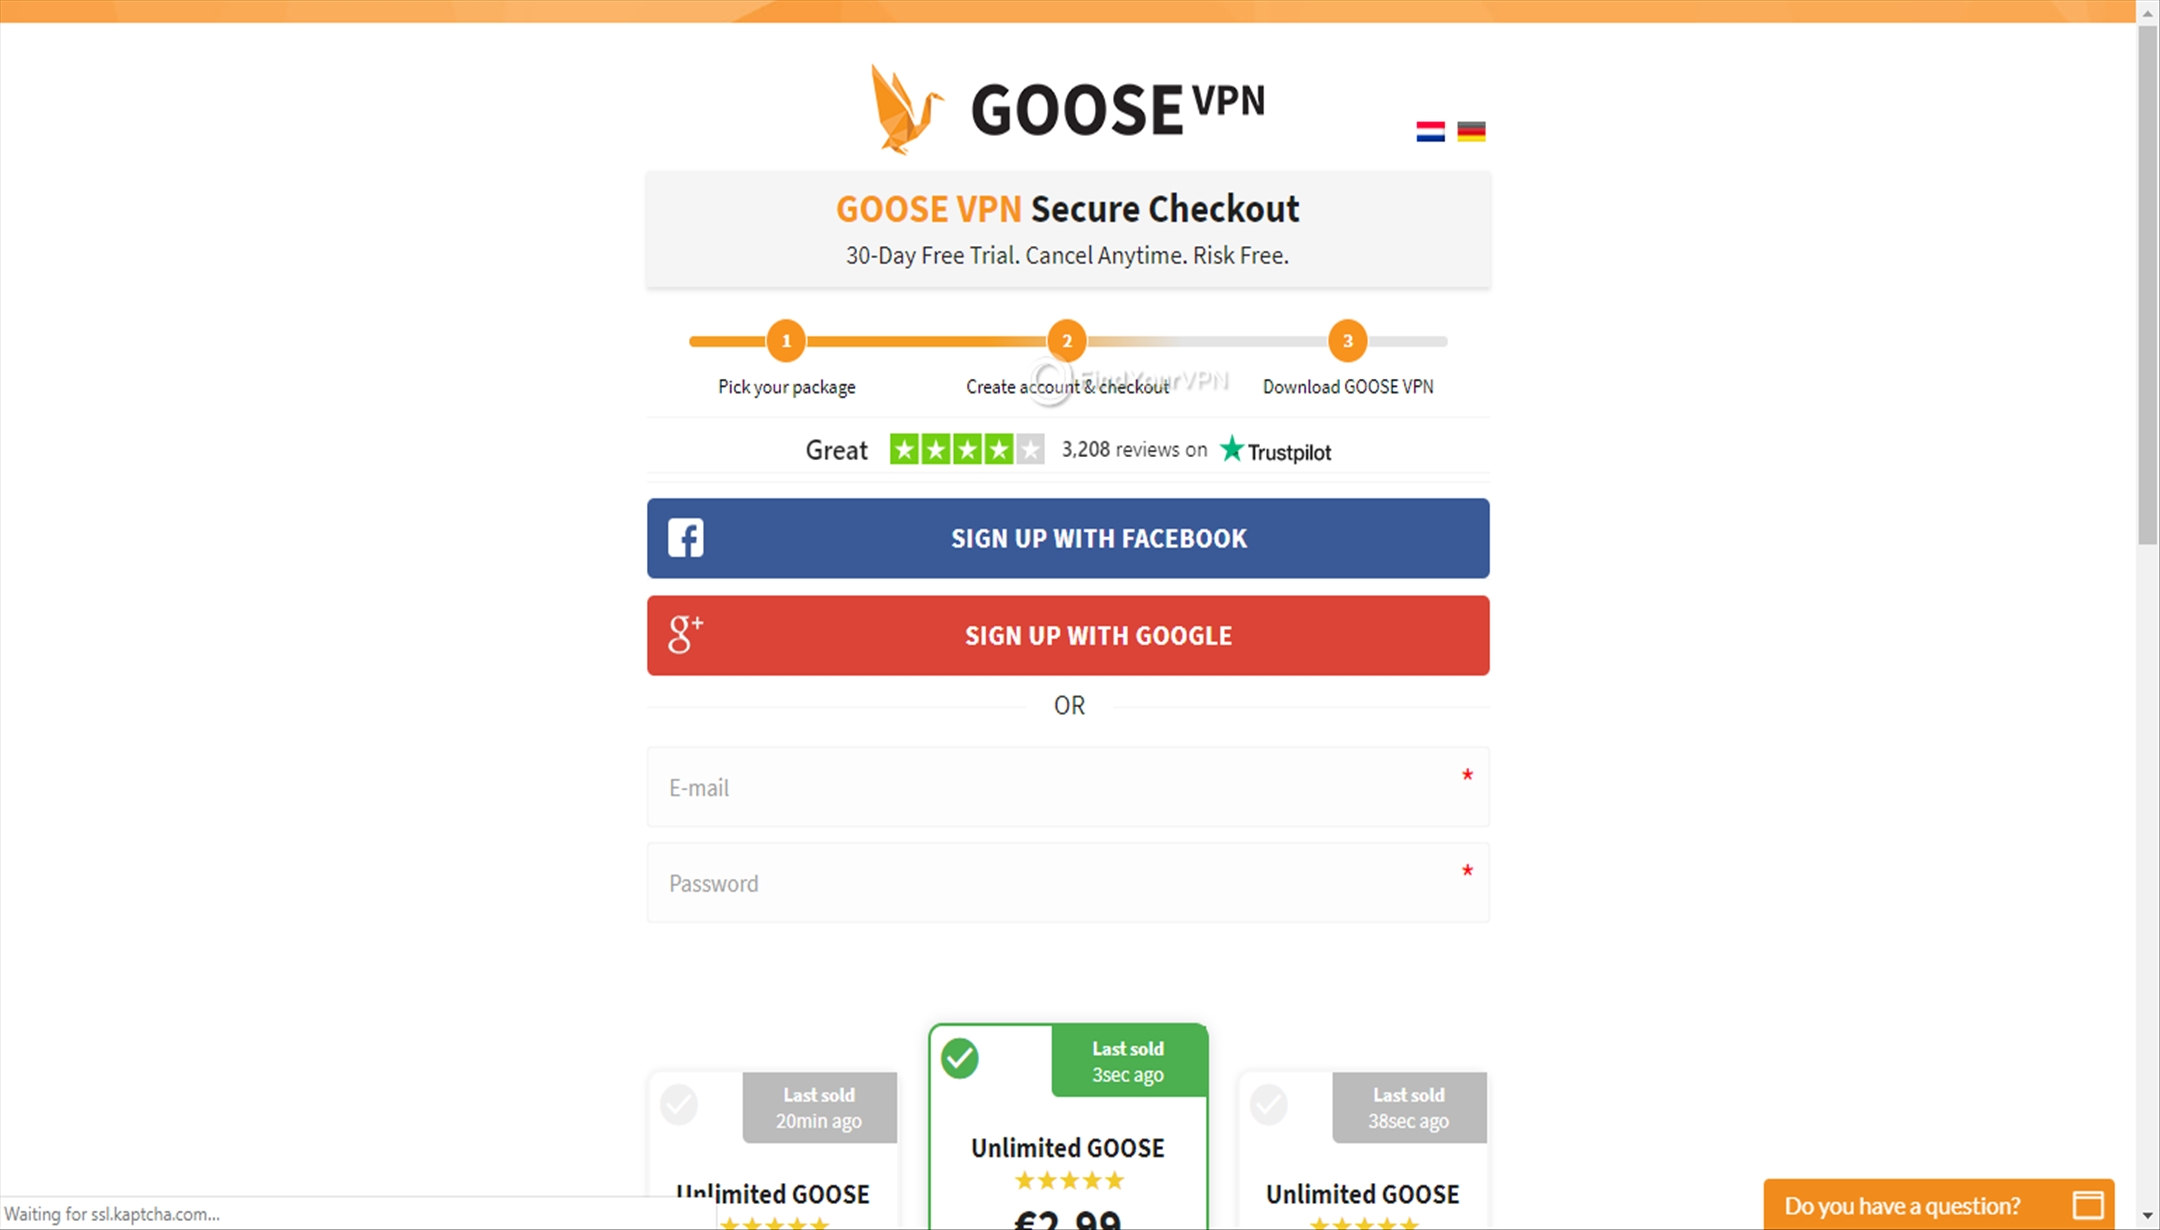 GOOSE VPN Creating Account Sign Up